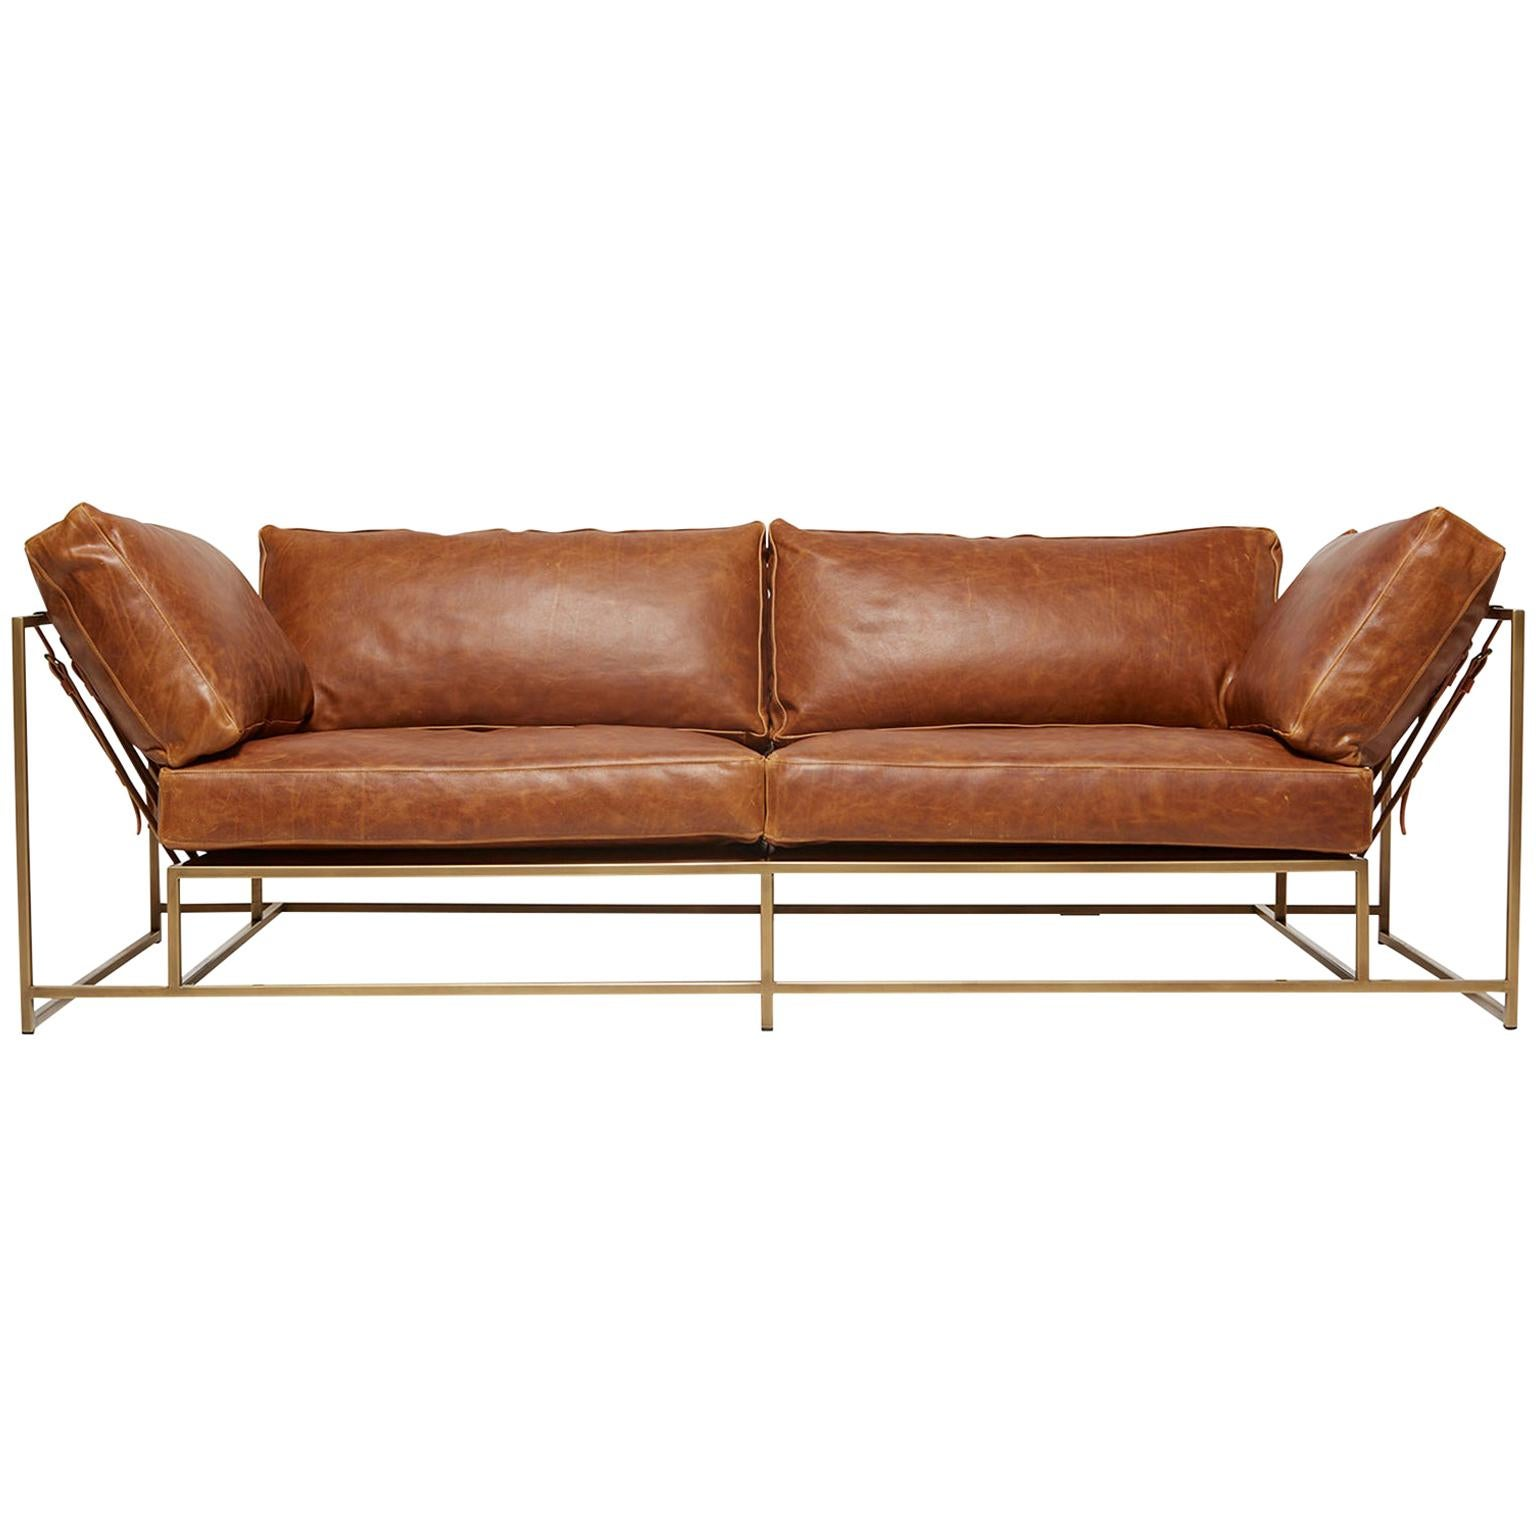 Waxed Potomac Tan Leather and Antique Brass Two-Seat Sofa